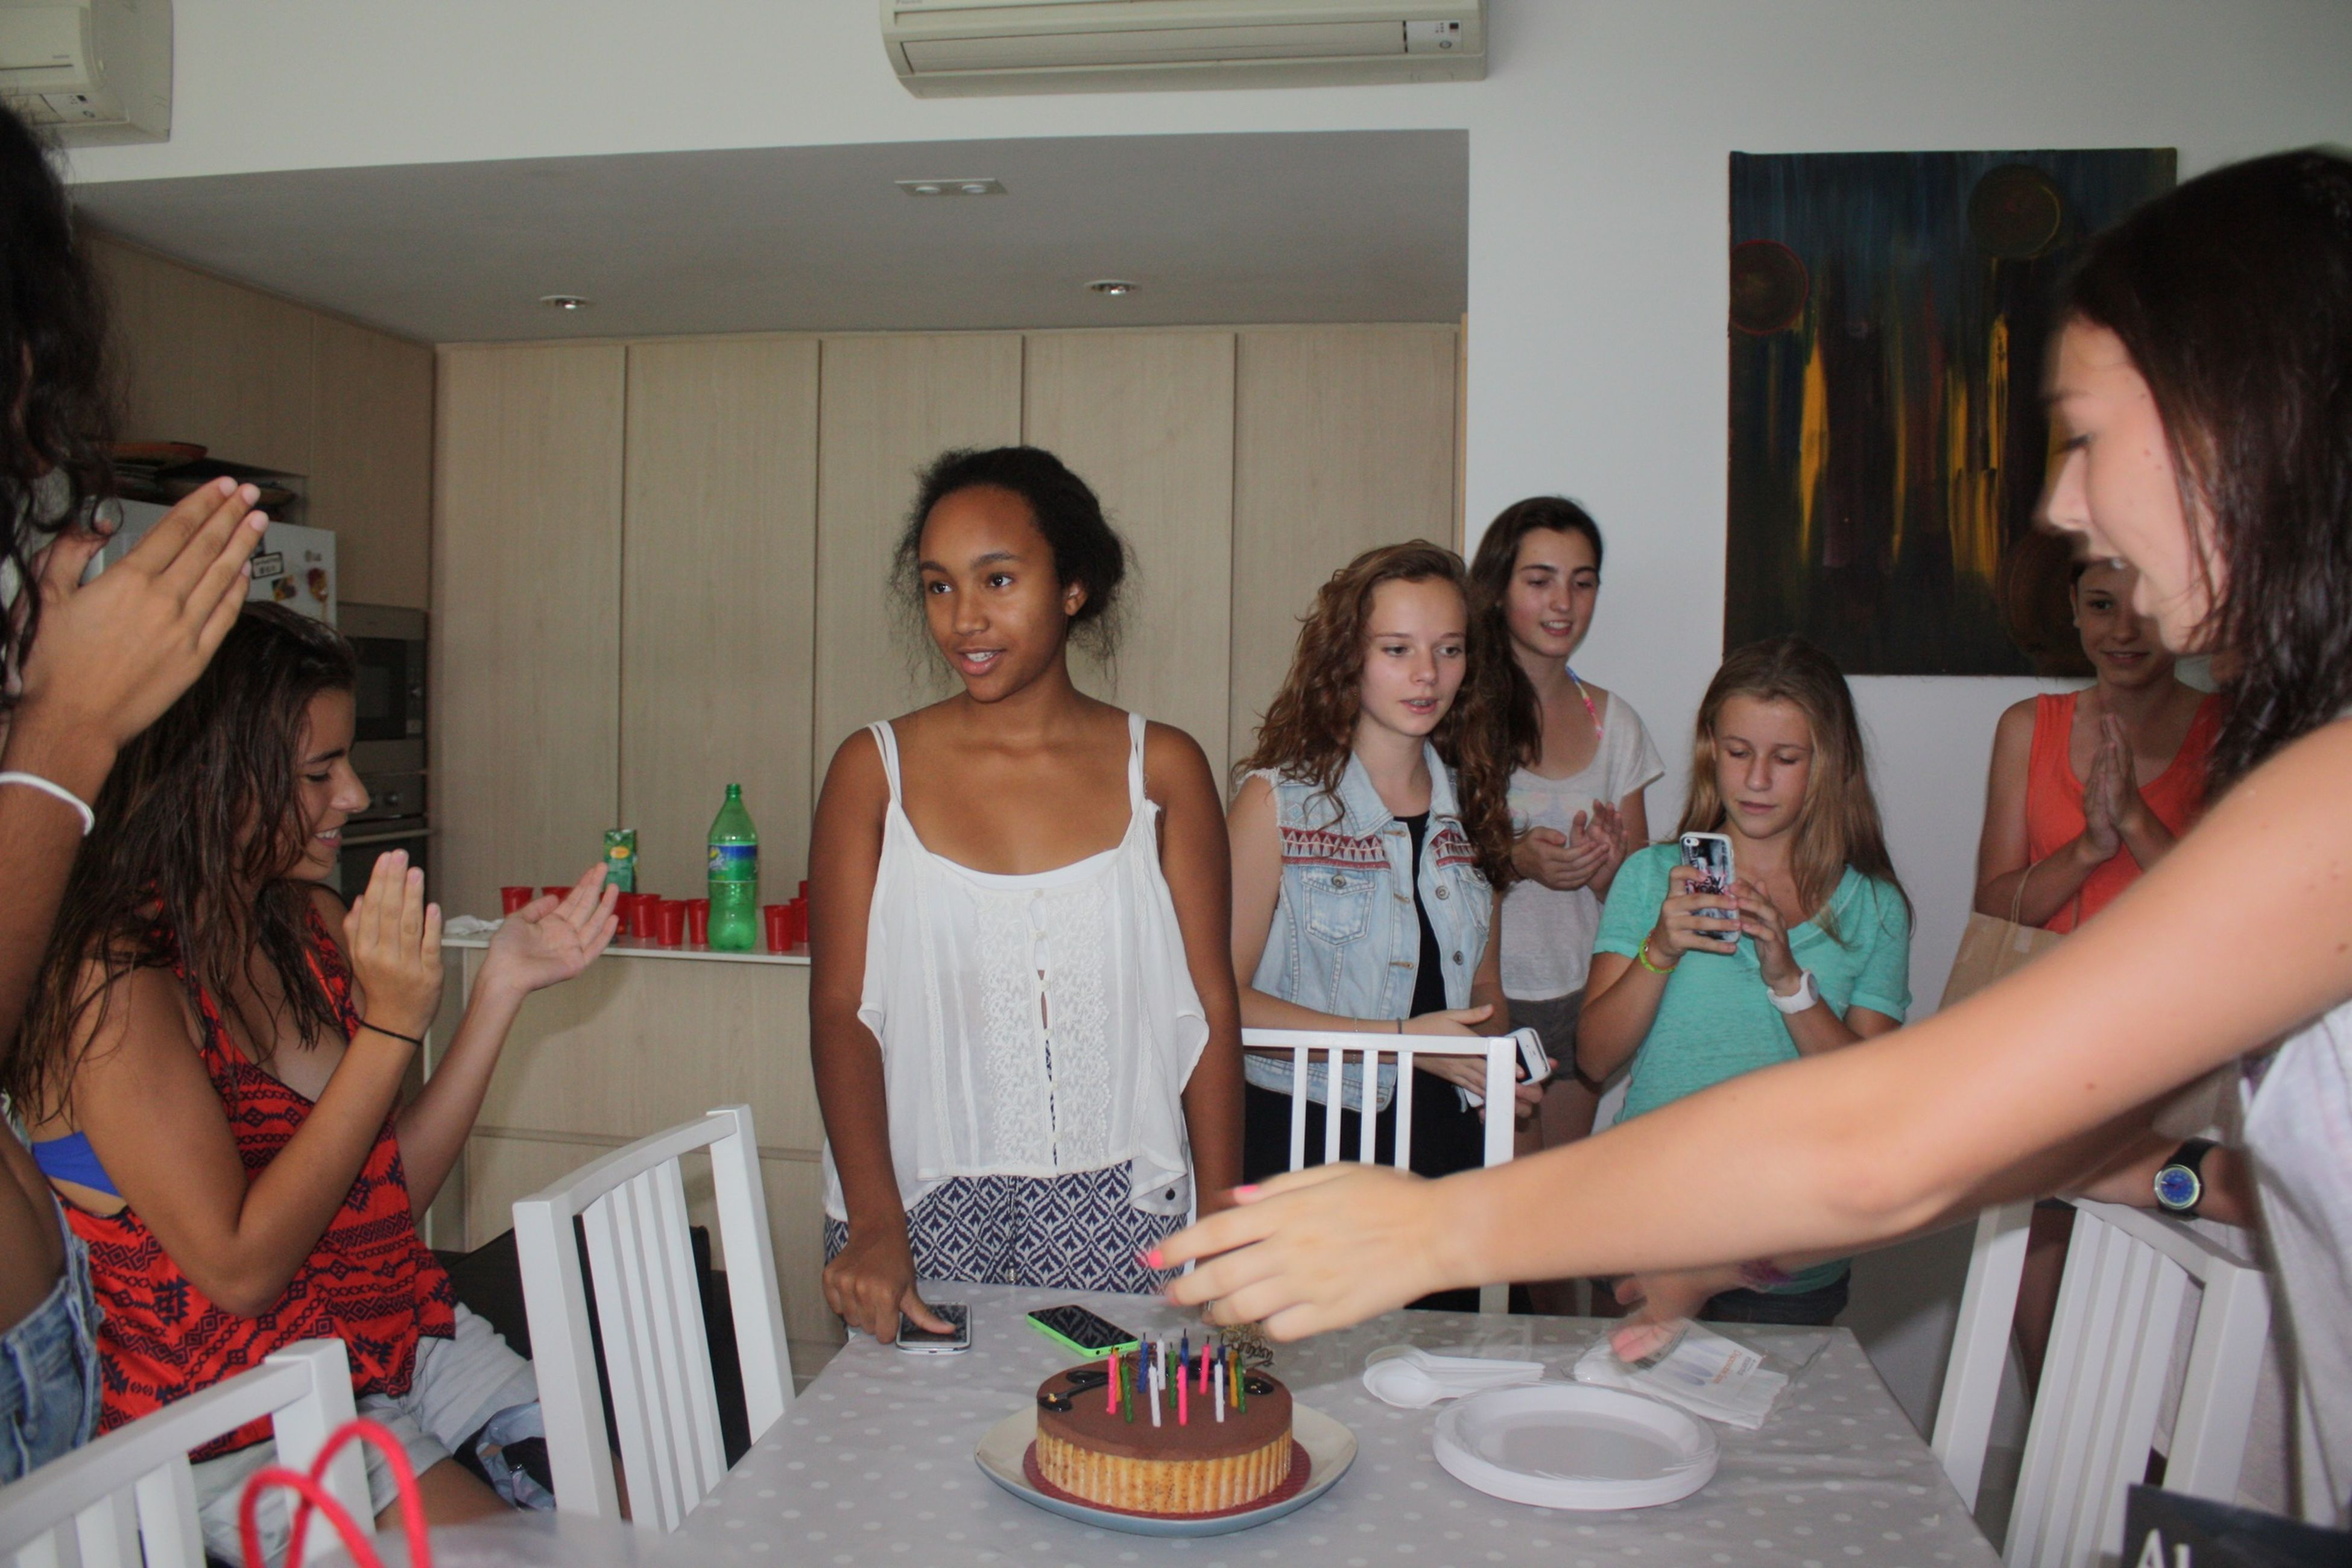 indoors, lifestyles, young adult, leisure activity, person, casual clothing, sitting, young women, front view, food and drink, holding, smiling, togetherness, happiness, table, looking at camera